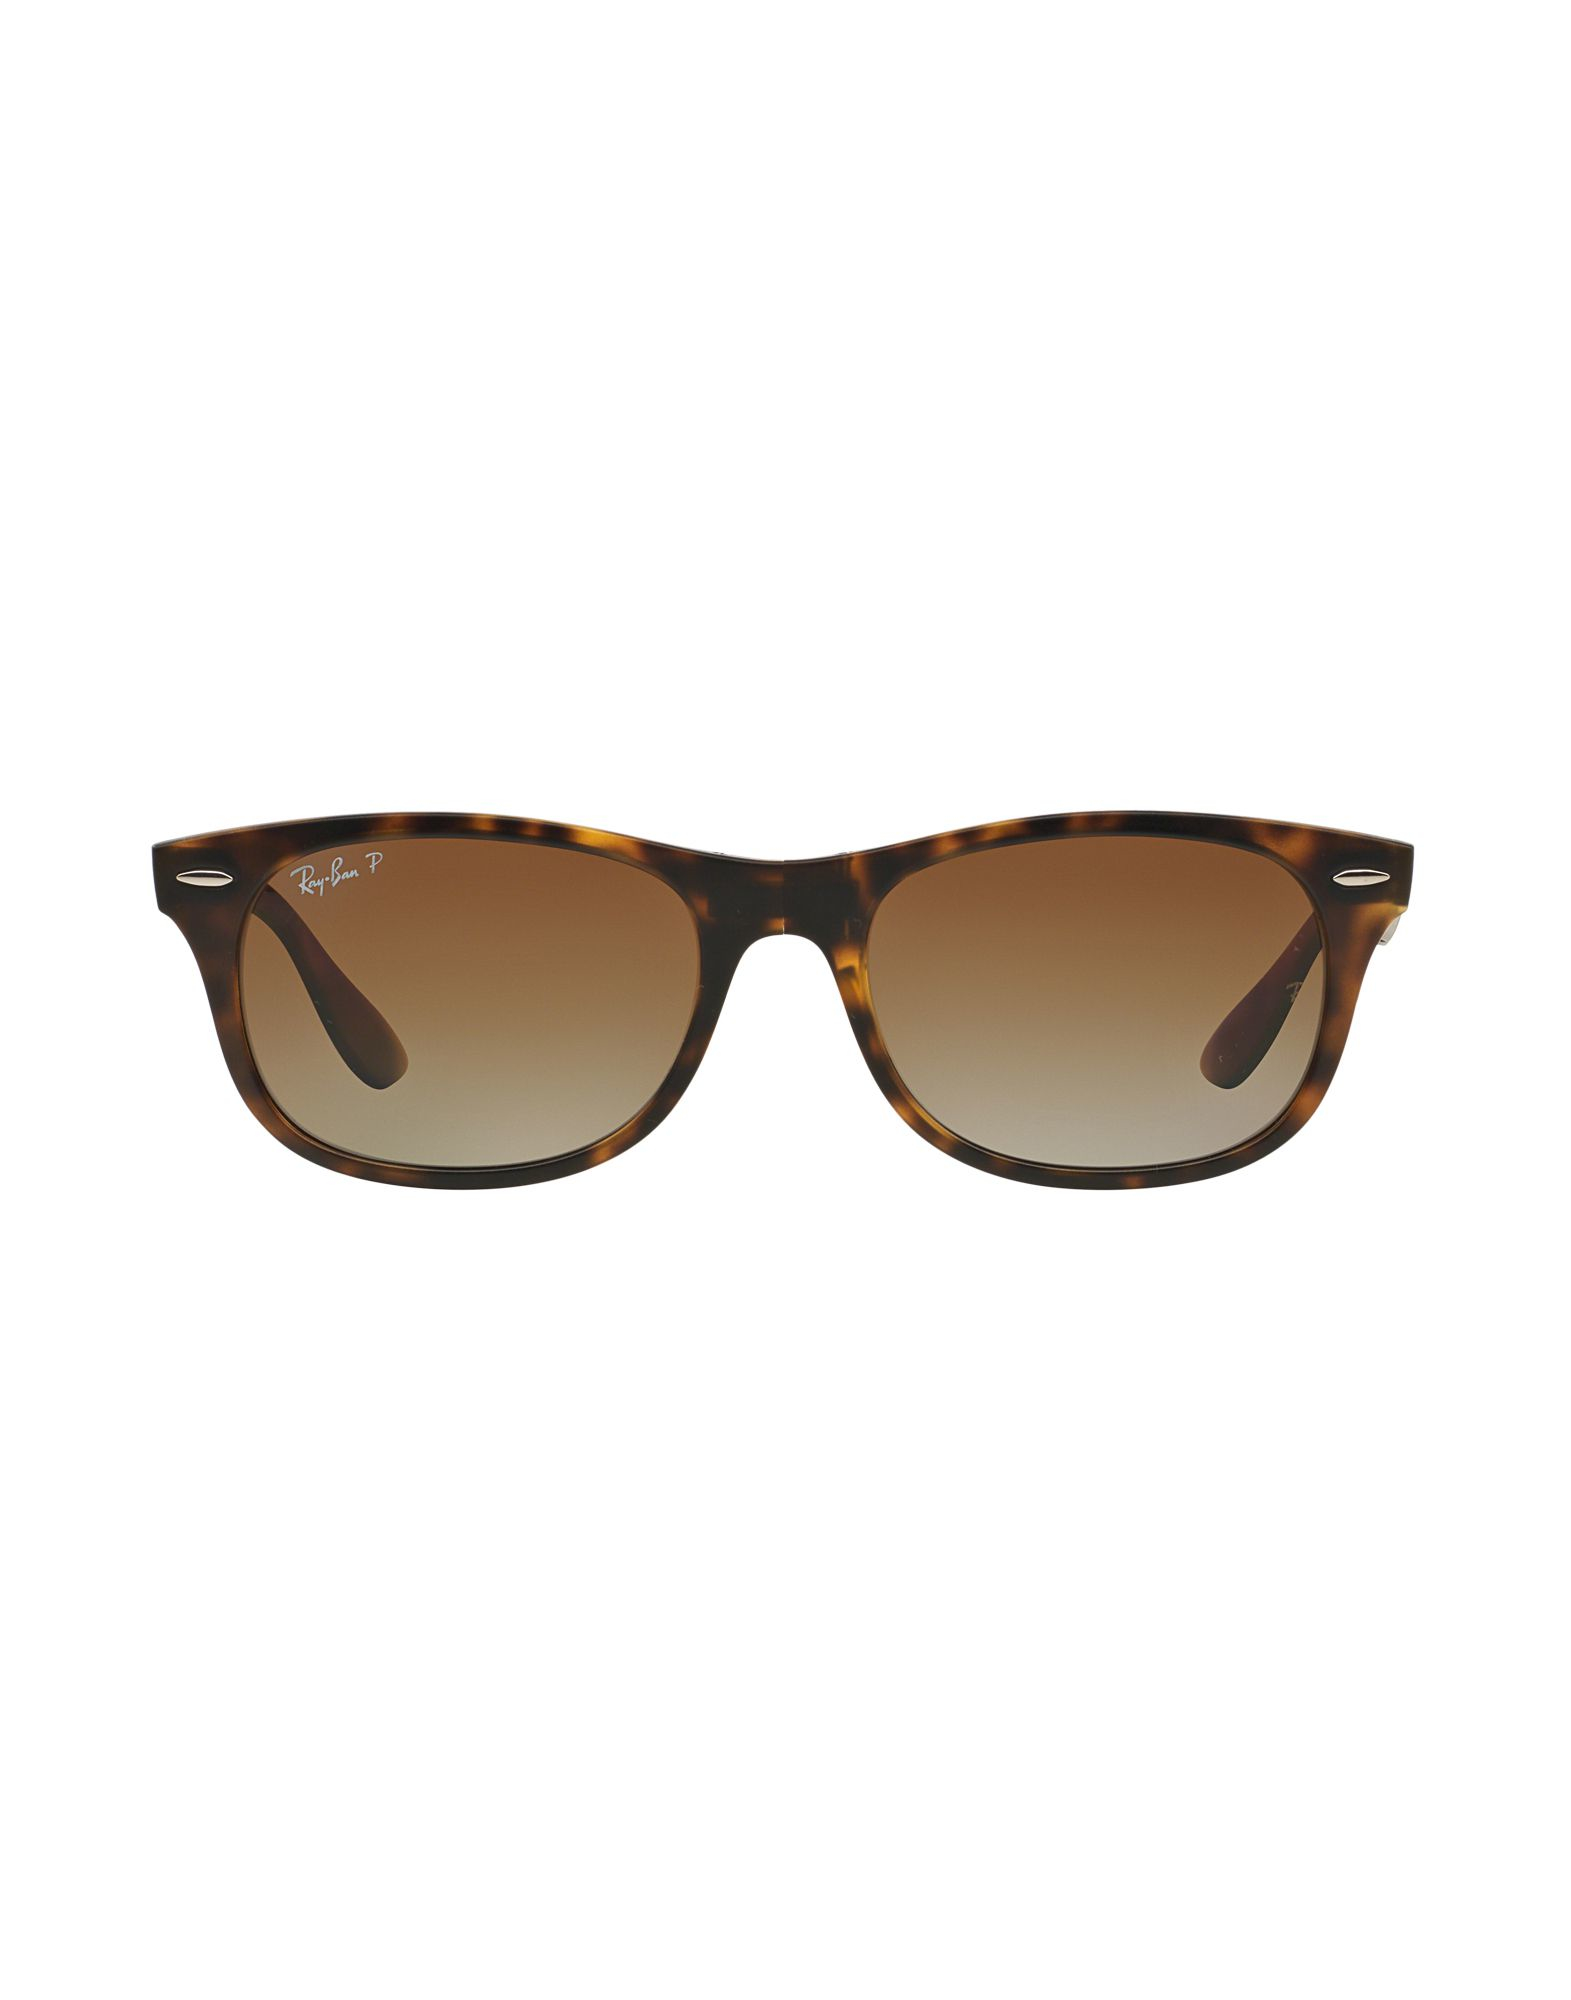 Ray Ban Brown Or Black Case